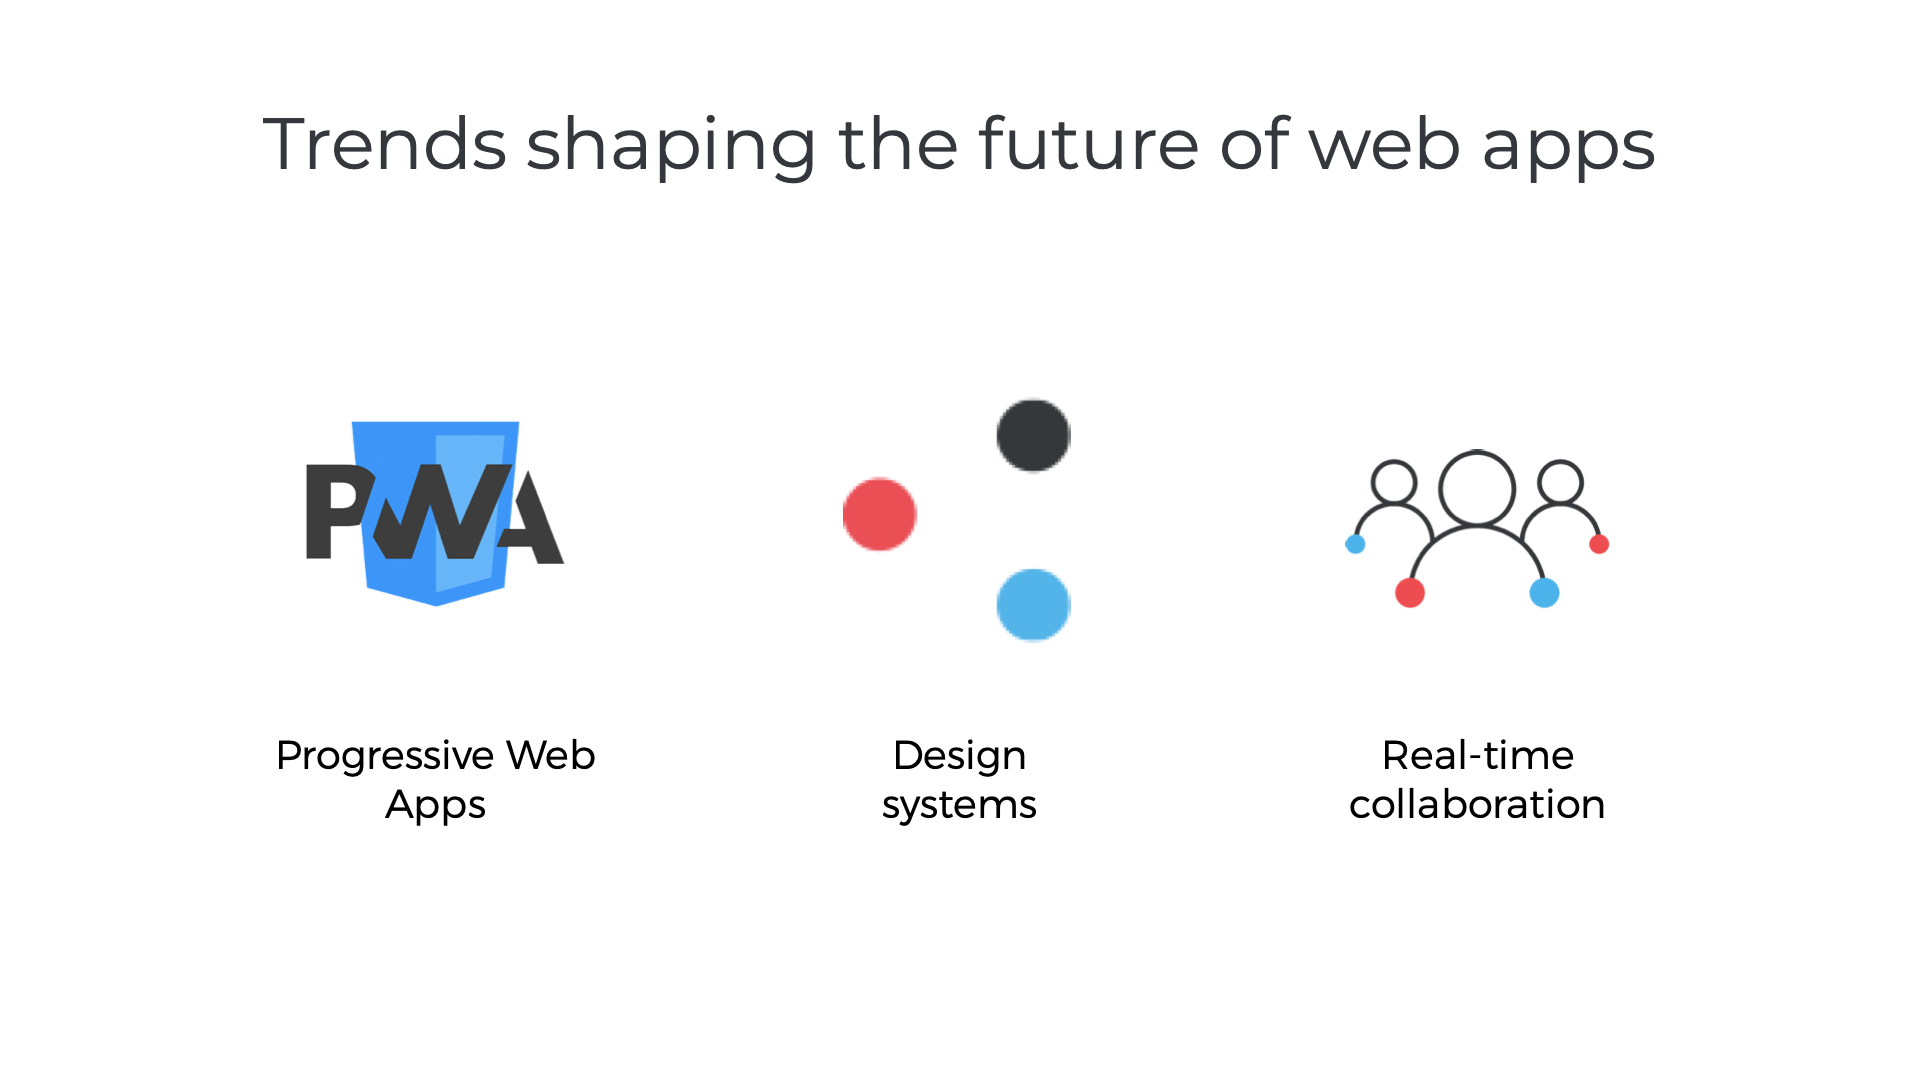 Trends shaping the future of web apps